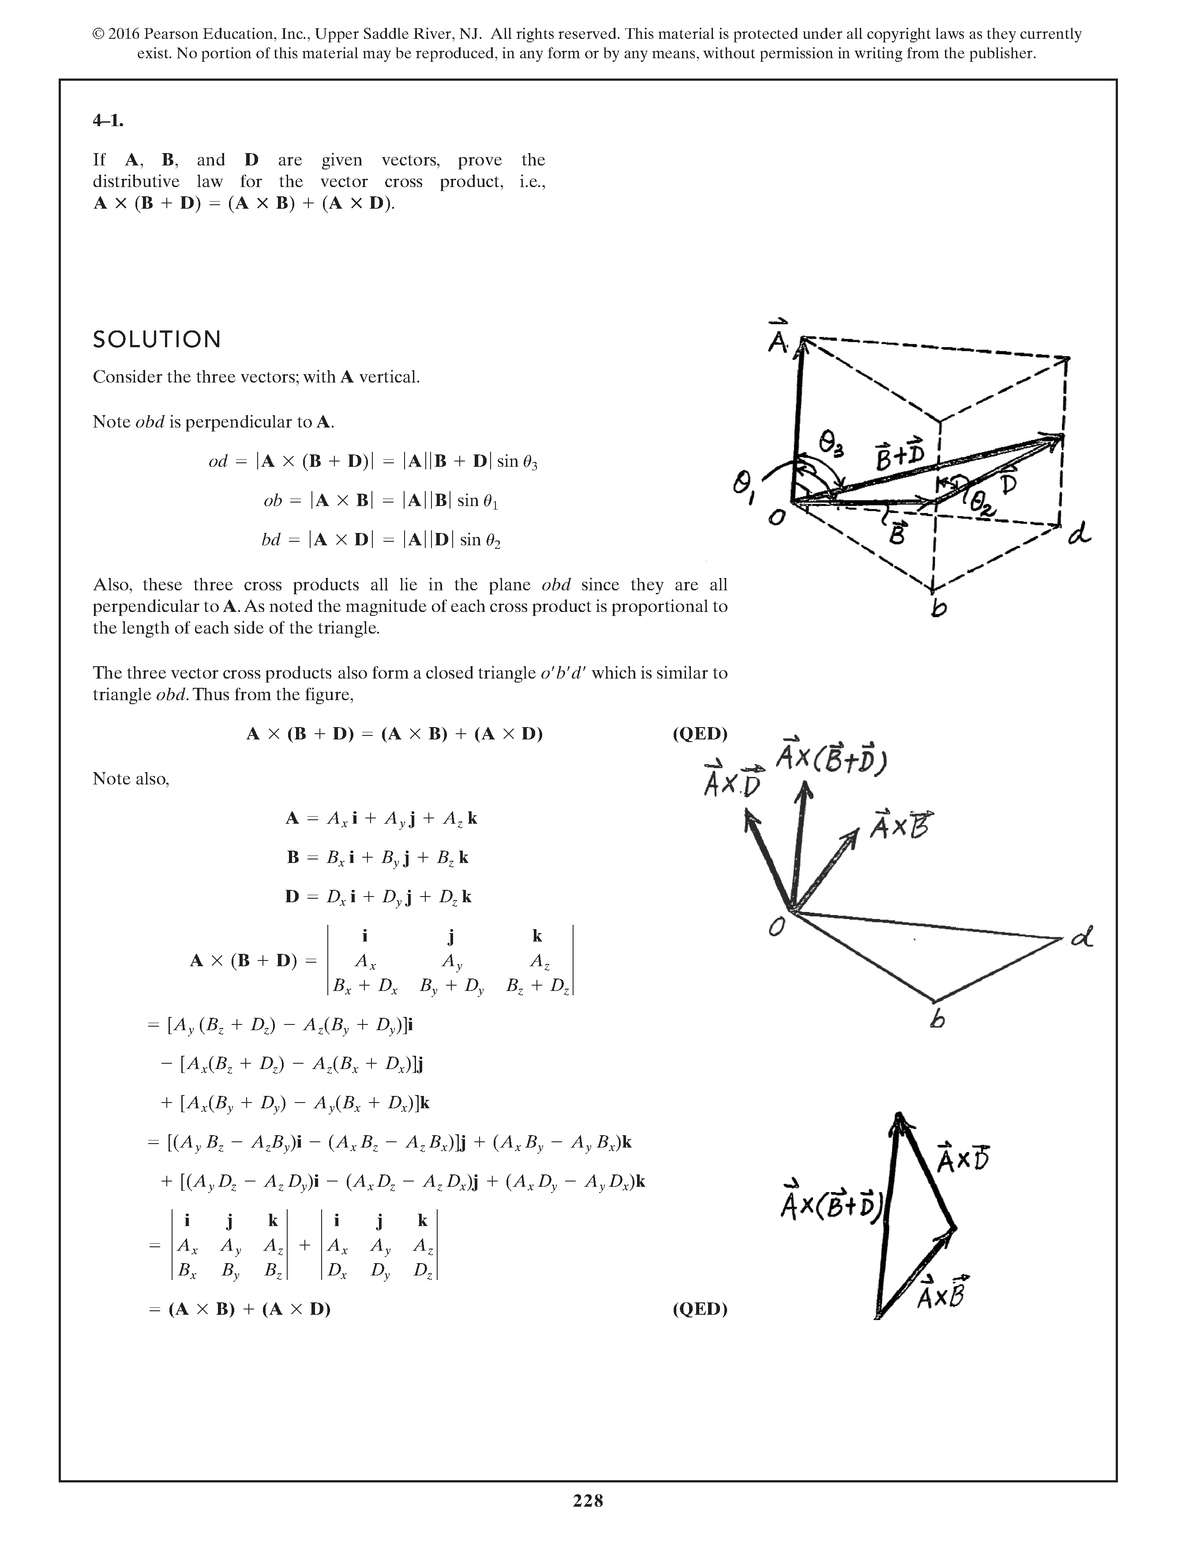 Chapter 17 Solution Manual Manual Guide